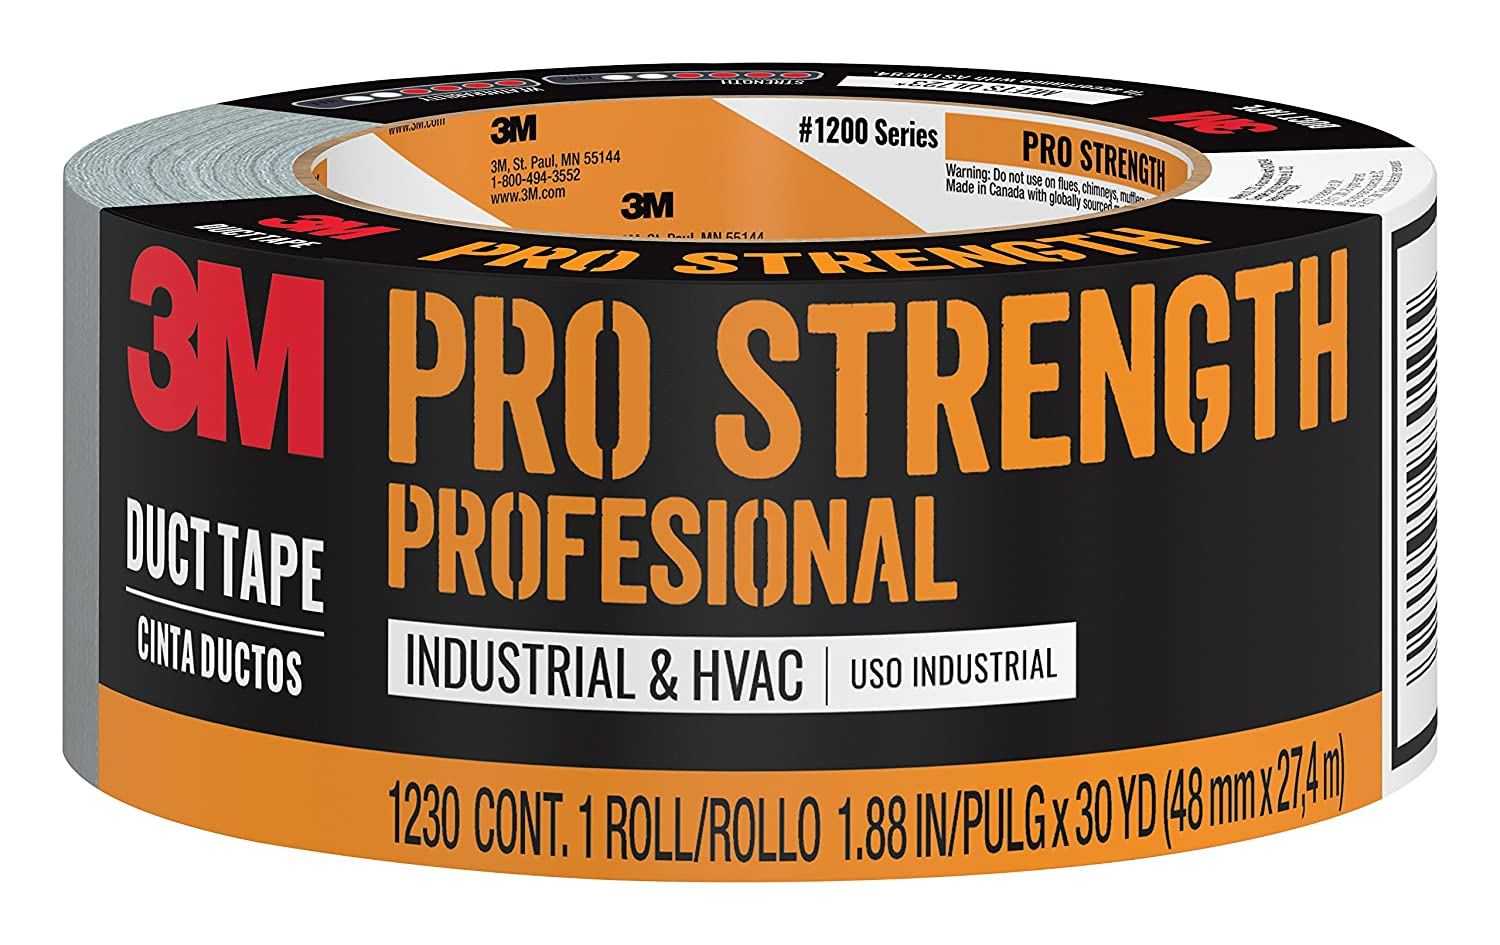 3MPro Strength Duct Tape, 1230-C, 1.88 Inches by 30 Yards